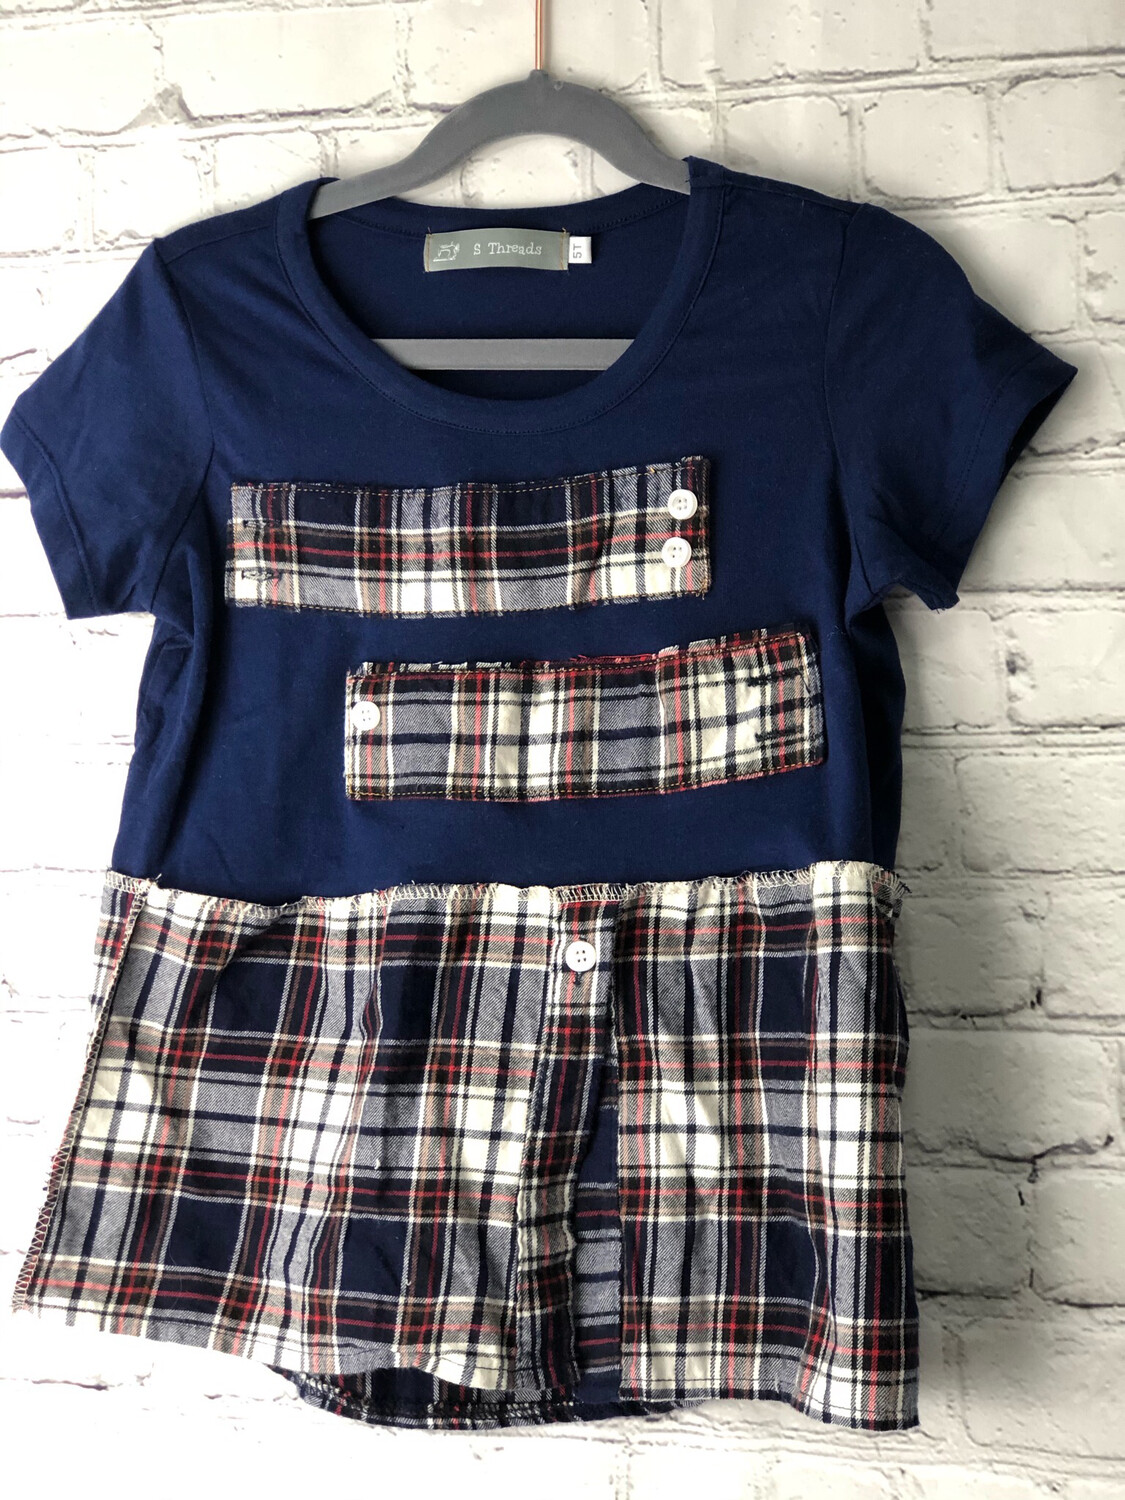 S Threads Kids Upcycled Short Sleeve Navy Plaid Shirt Size Child 5T